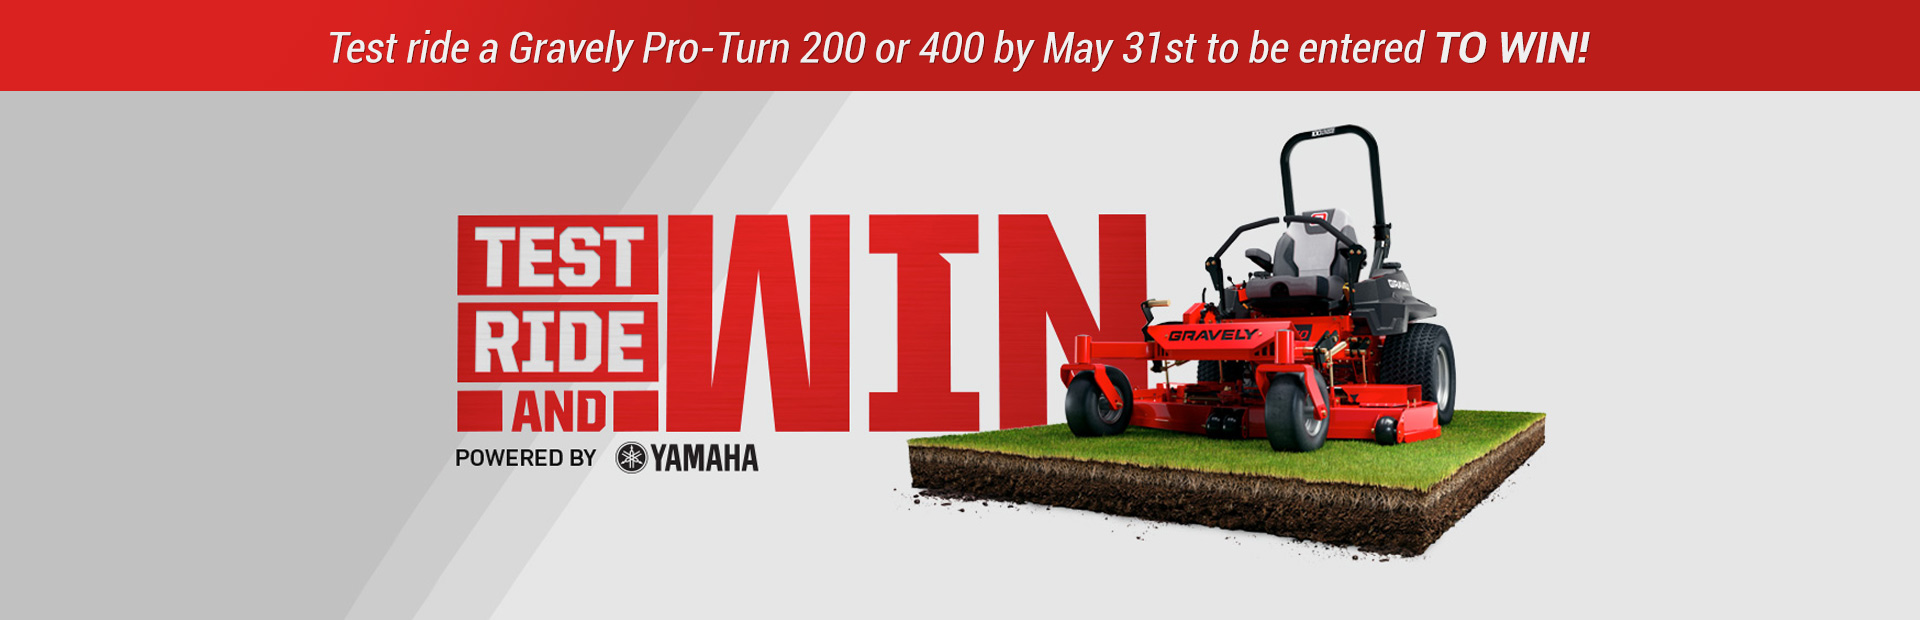 Gravely Test Ride and Win Sweepstakes: Test ride a Gravely Pro-Turn 200 or 400 by May 31st to be ent